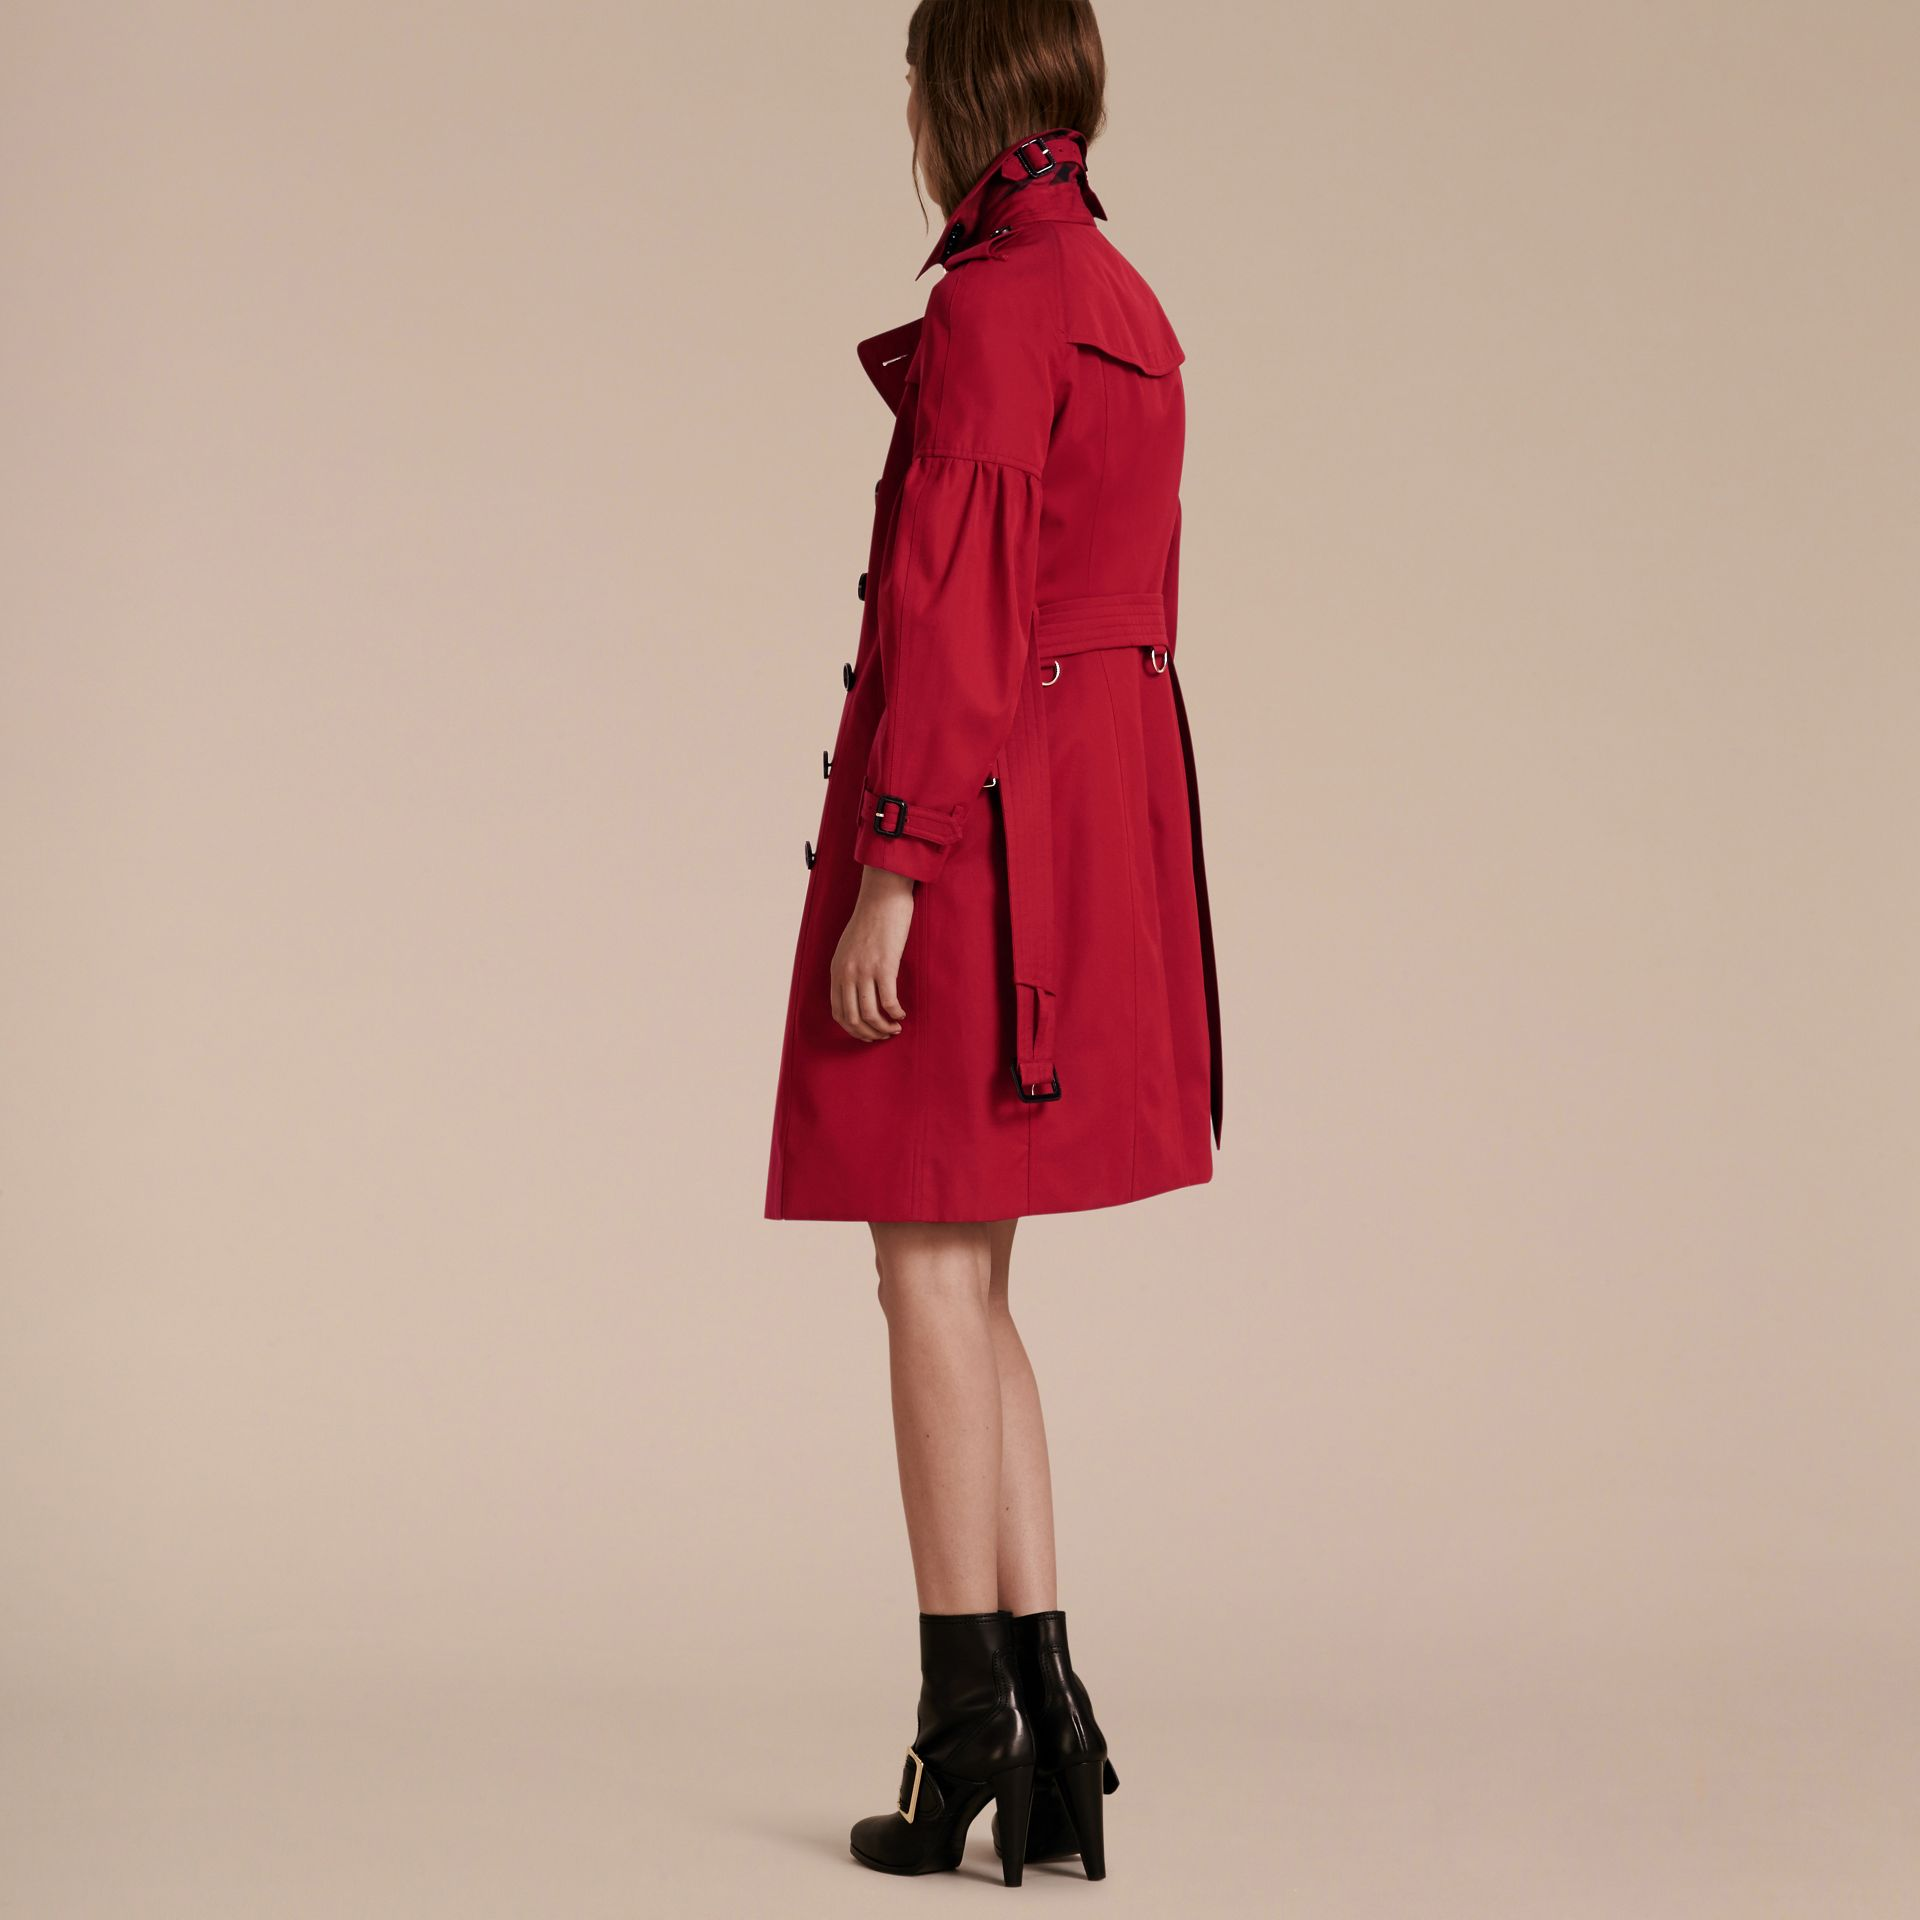 Rouge parade Trench-coat en gabardine de coton avec manches bouffantes Rouge Parade - photo de la galerie 3